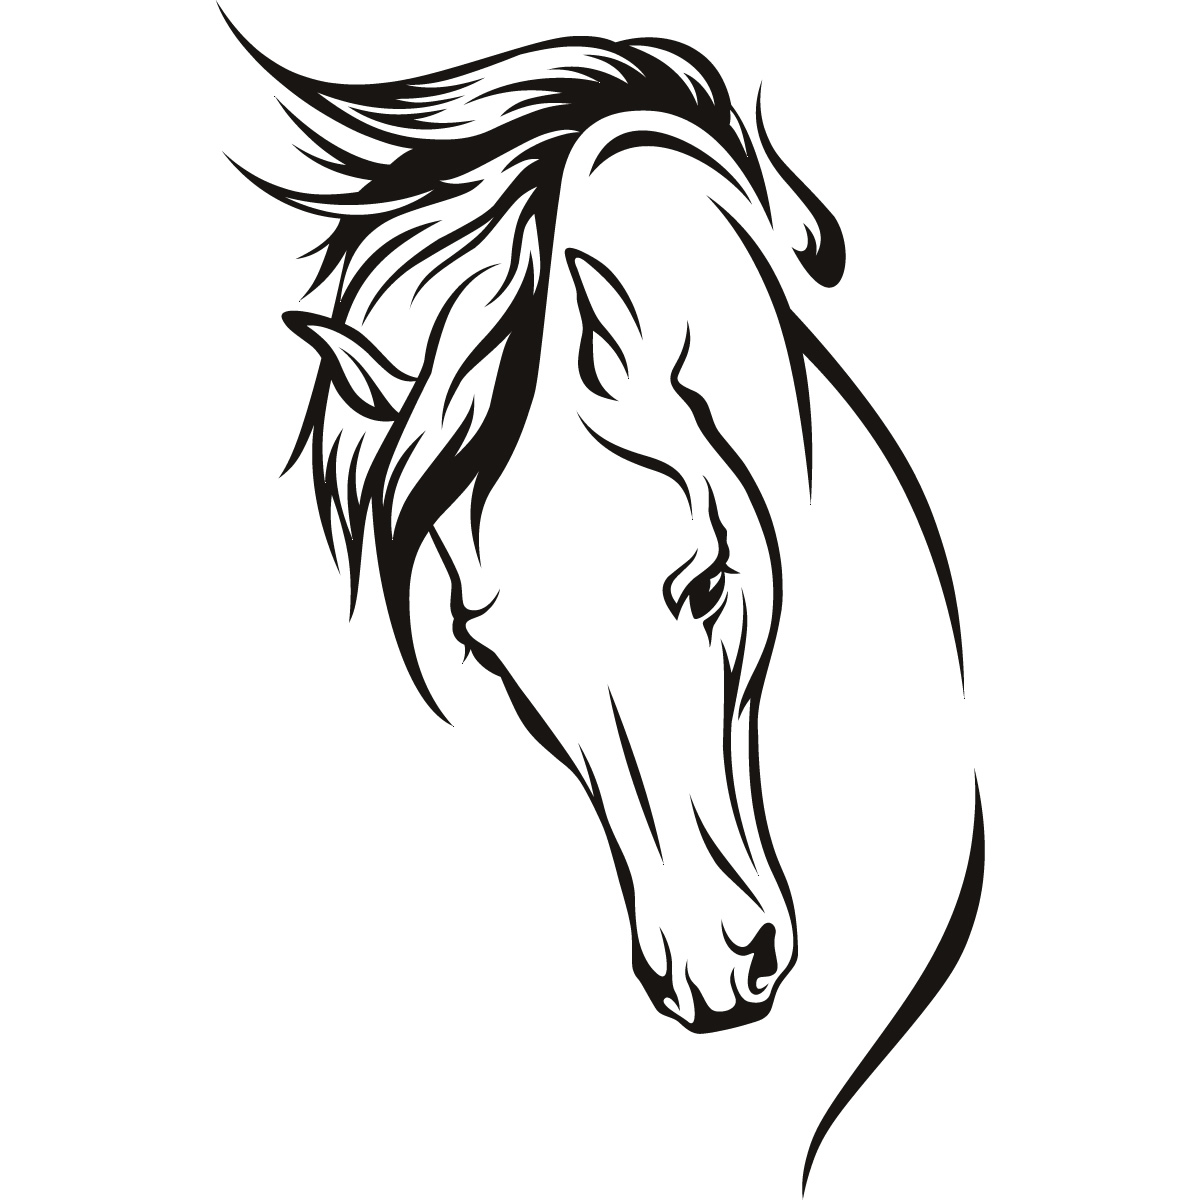 Horse line drawing - photo#3